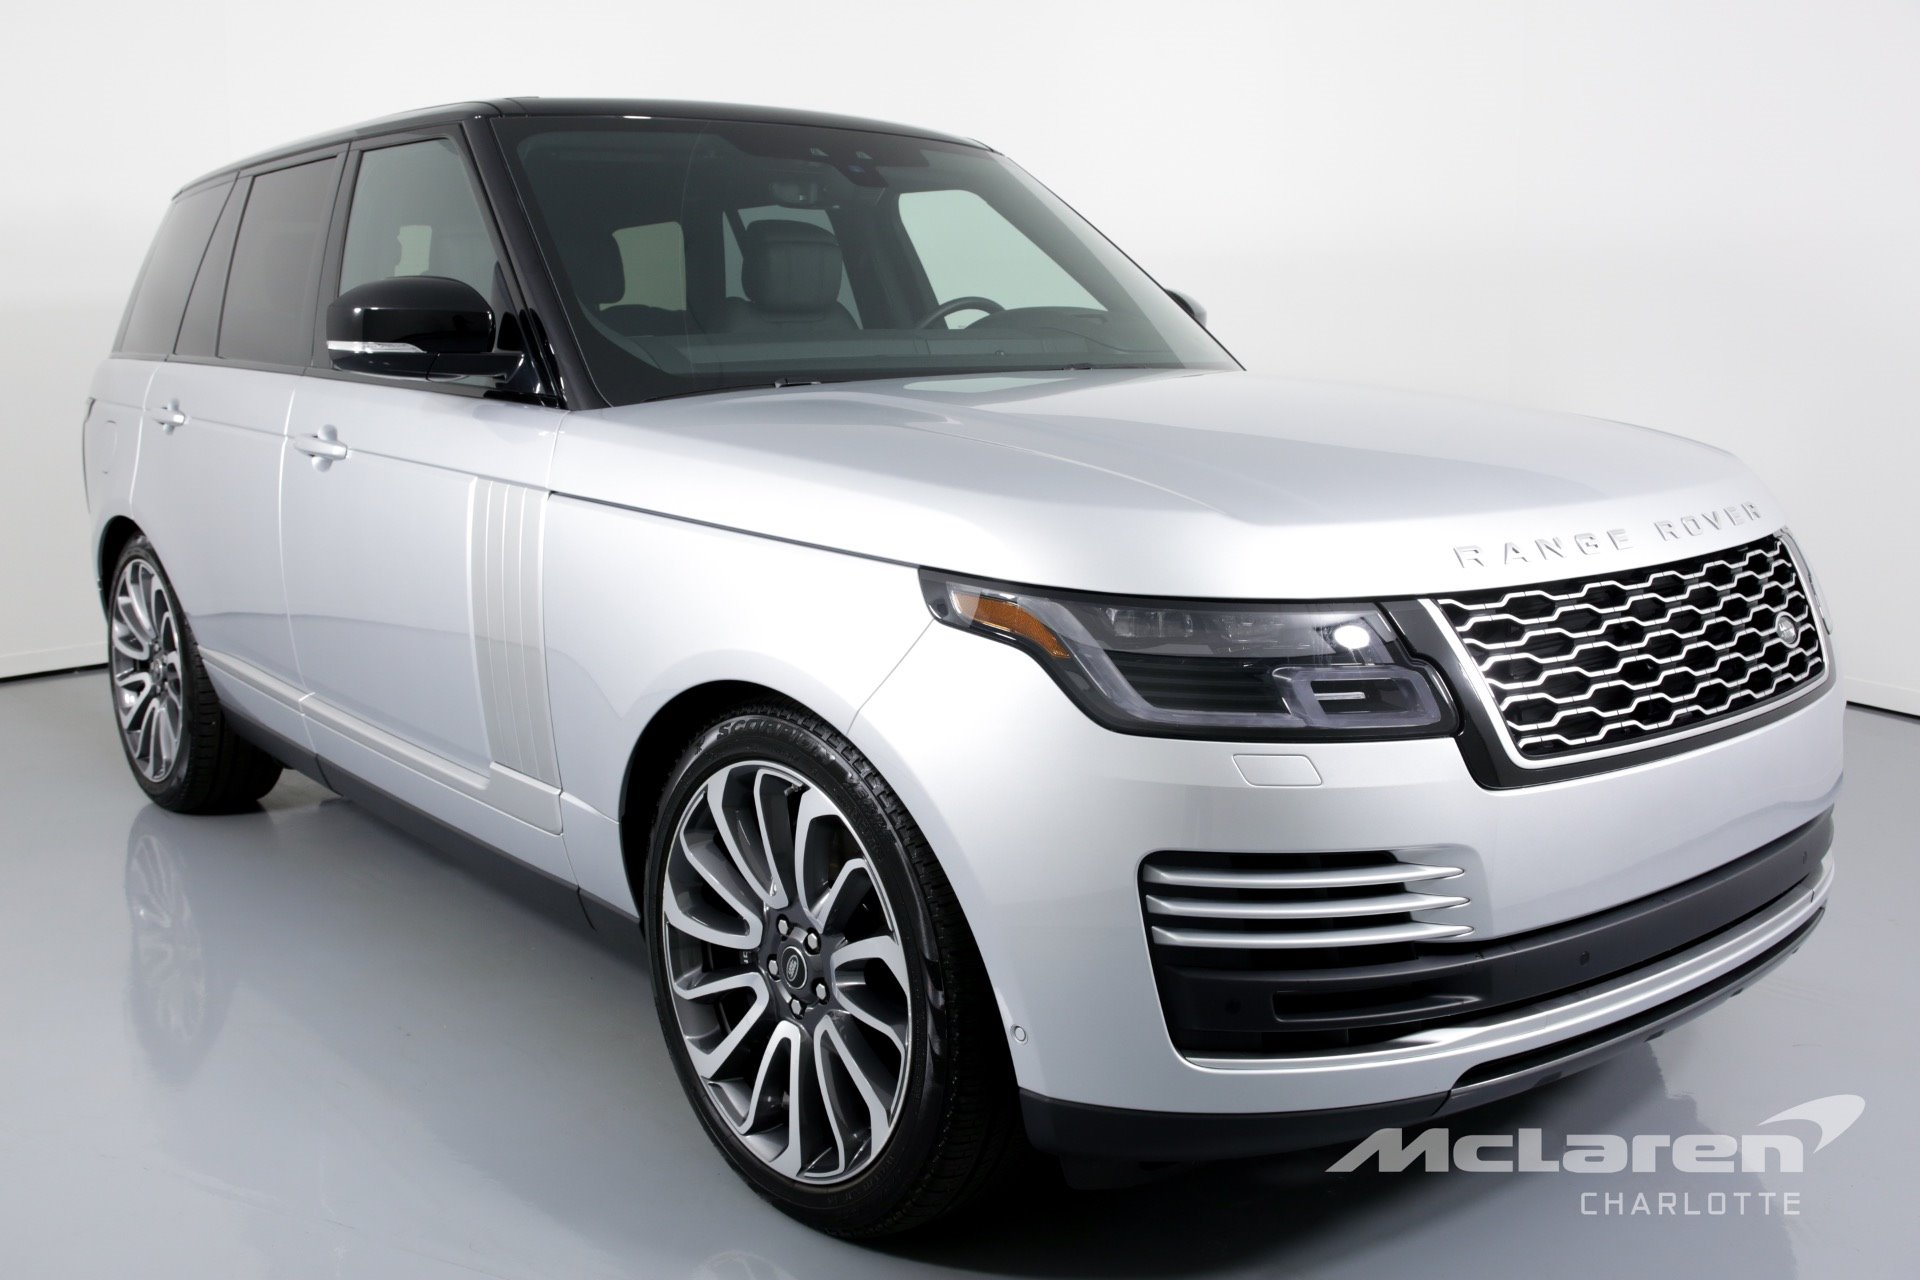 New 2019 Land Rover-Range Rover HSE Td6 Range Rover HSE Td6 for sale $96,950 at M and V Leasing in Brooklyn NY 11223 1